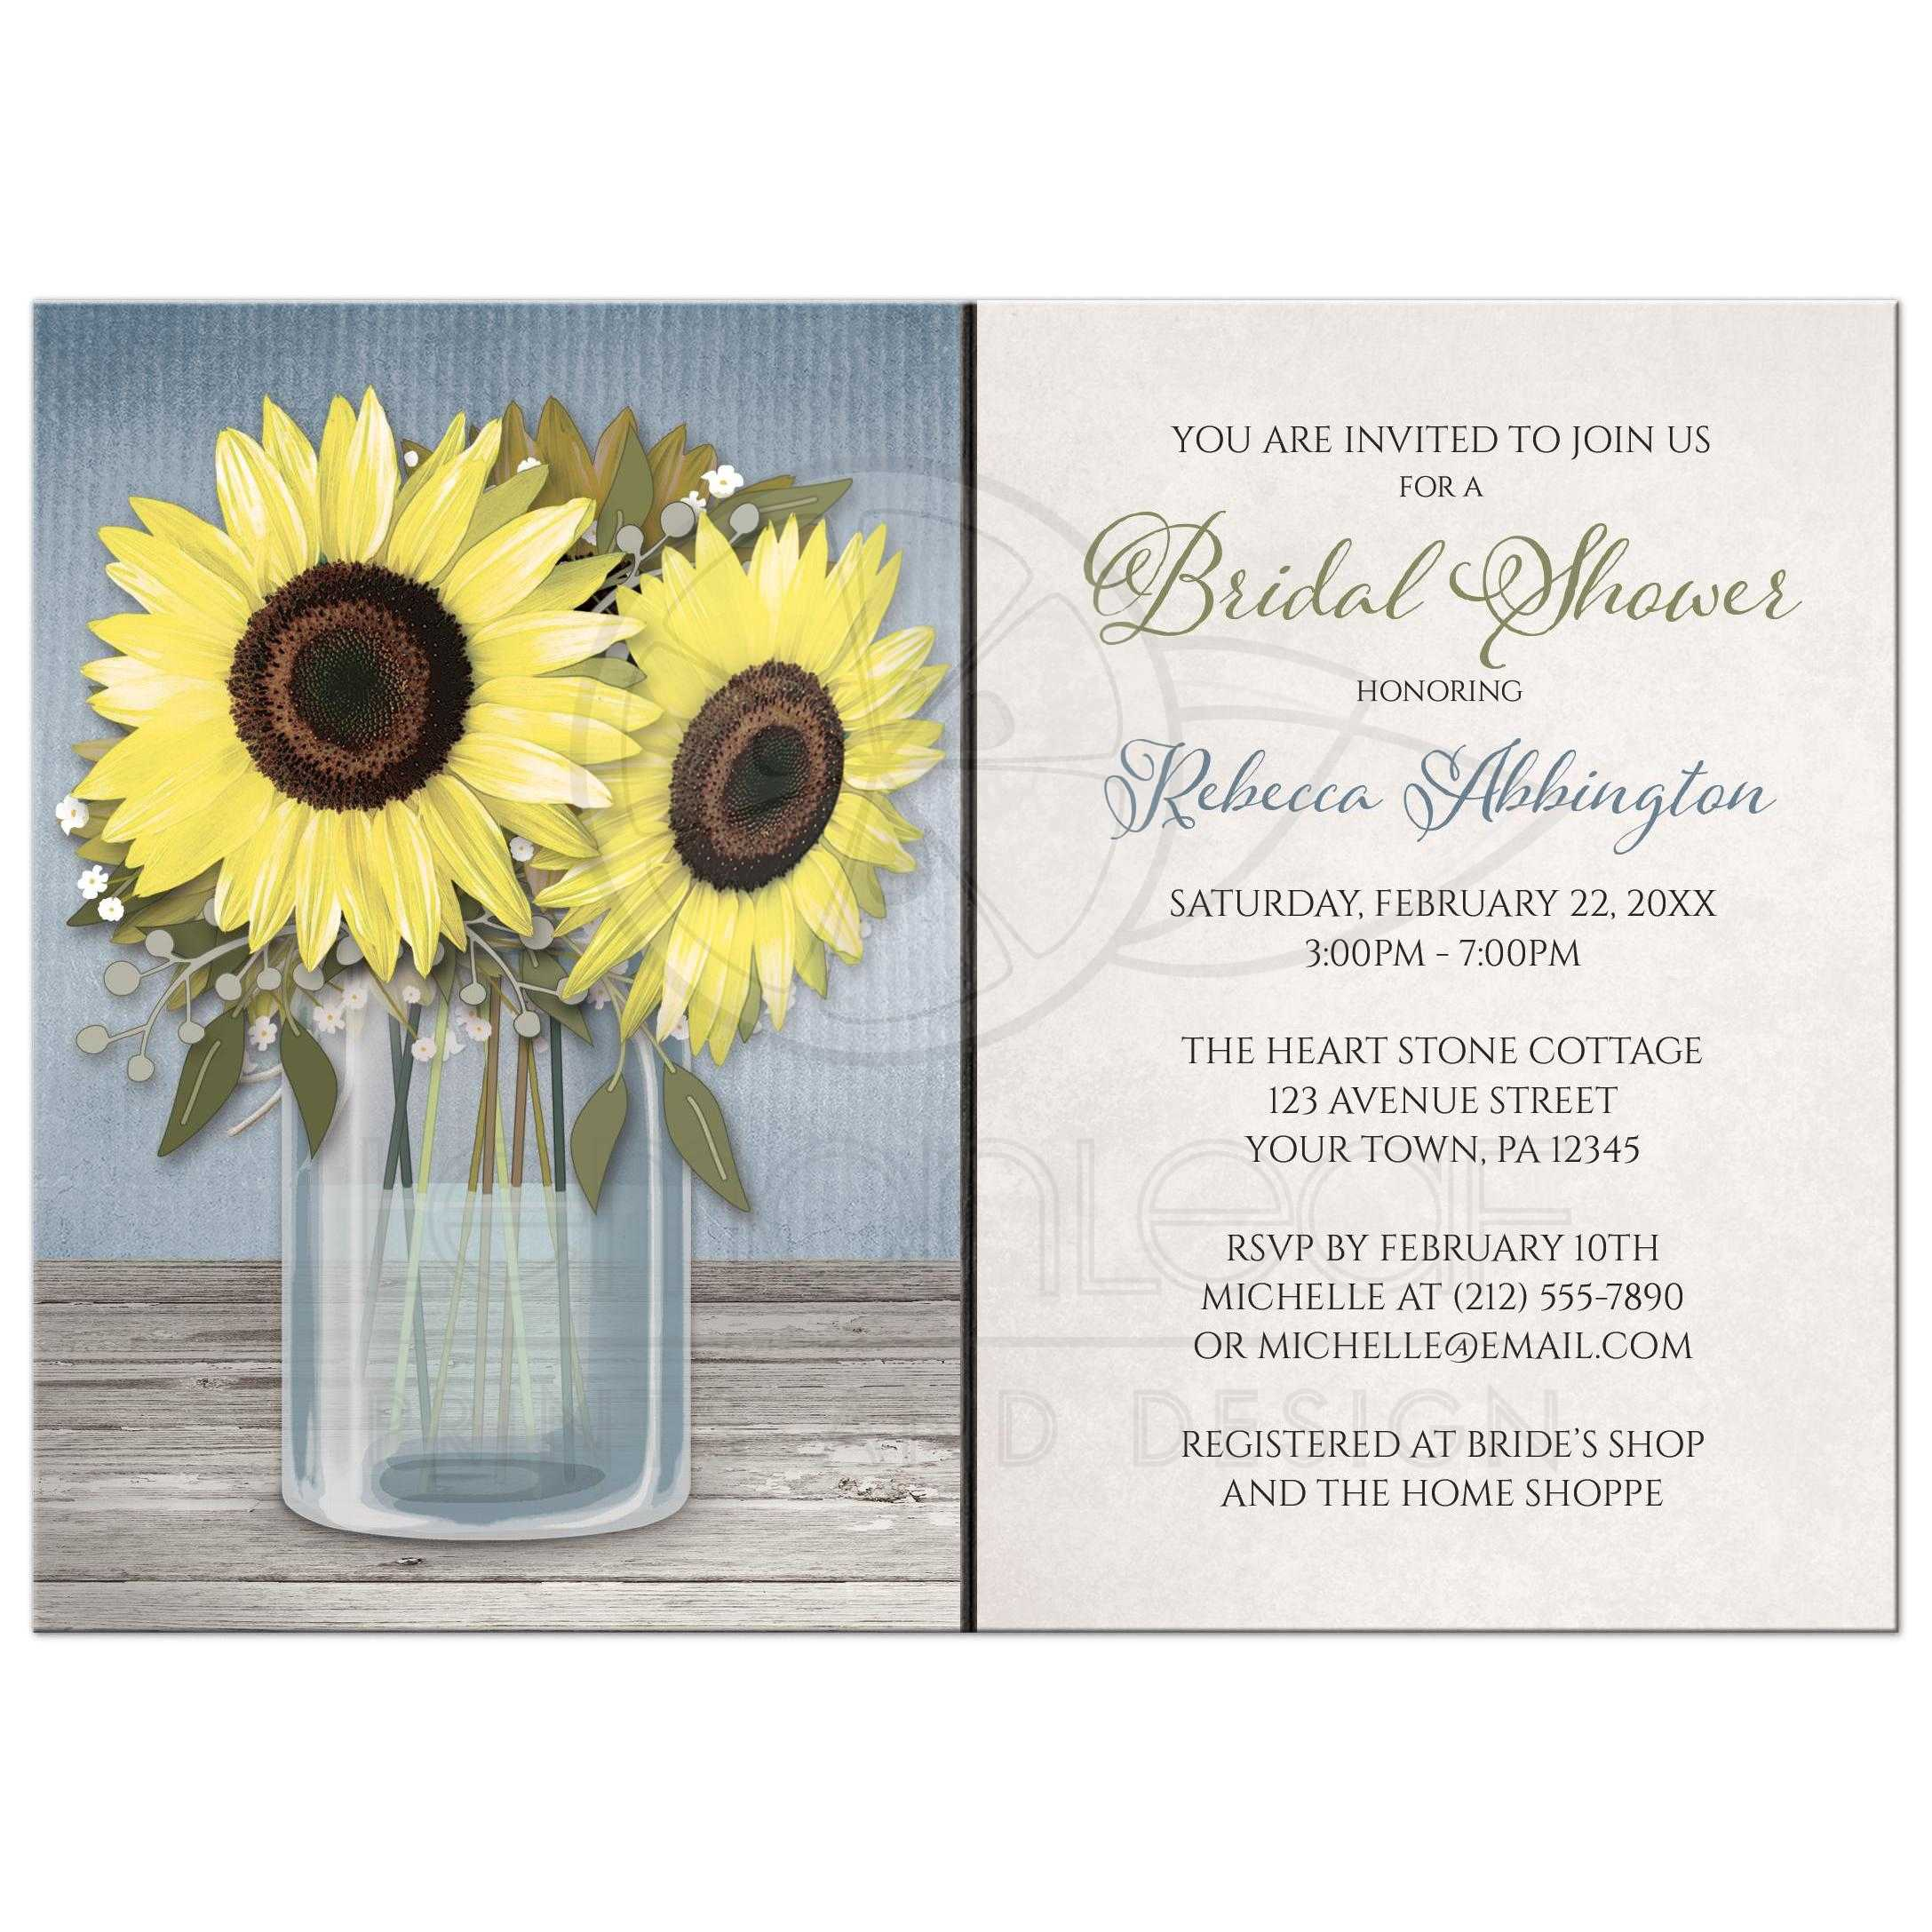 Shower invitations rustic sunflower blue mason jar bridal shower invitations rustic sunflower blue mason jar filmwisefo Images